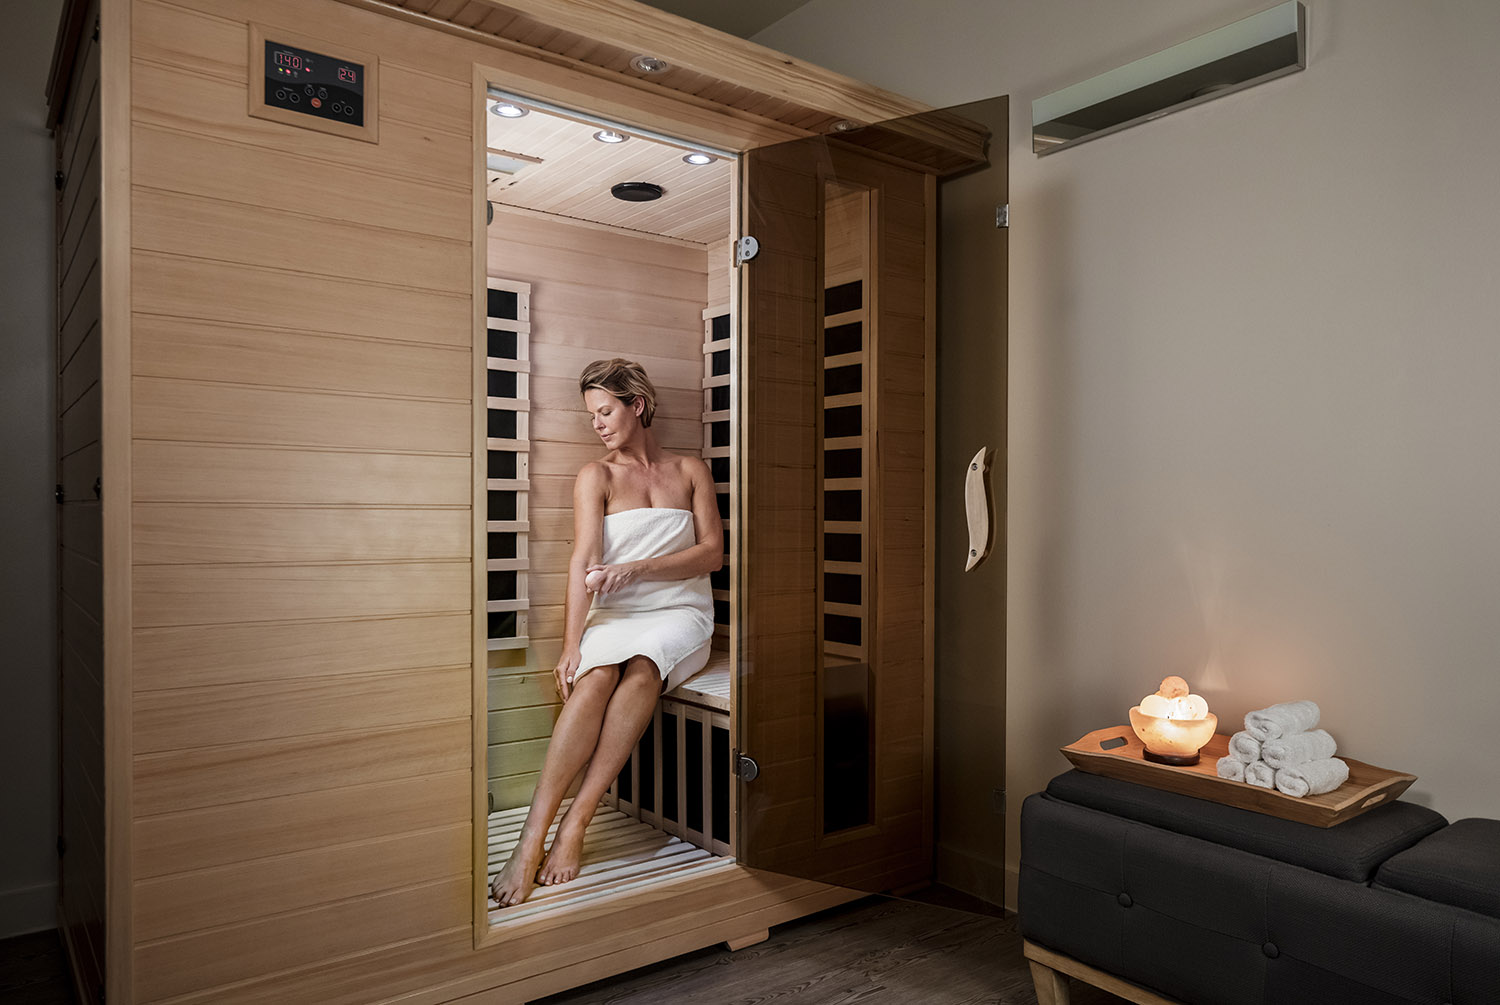 The spa also offers has infrared sauna.